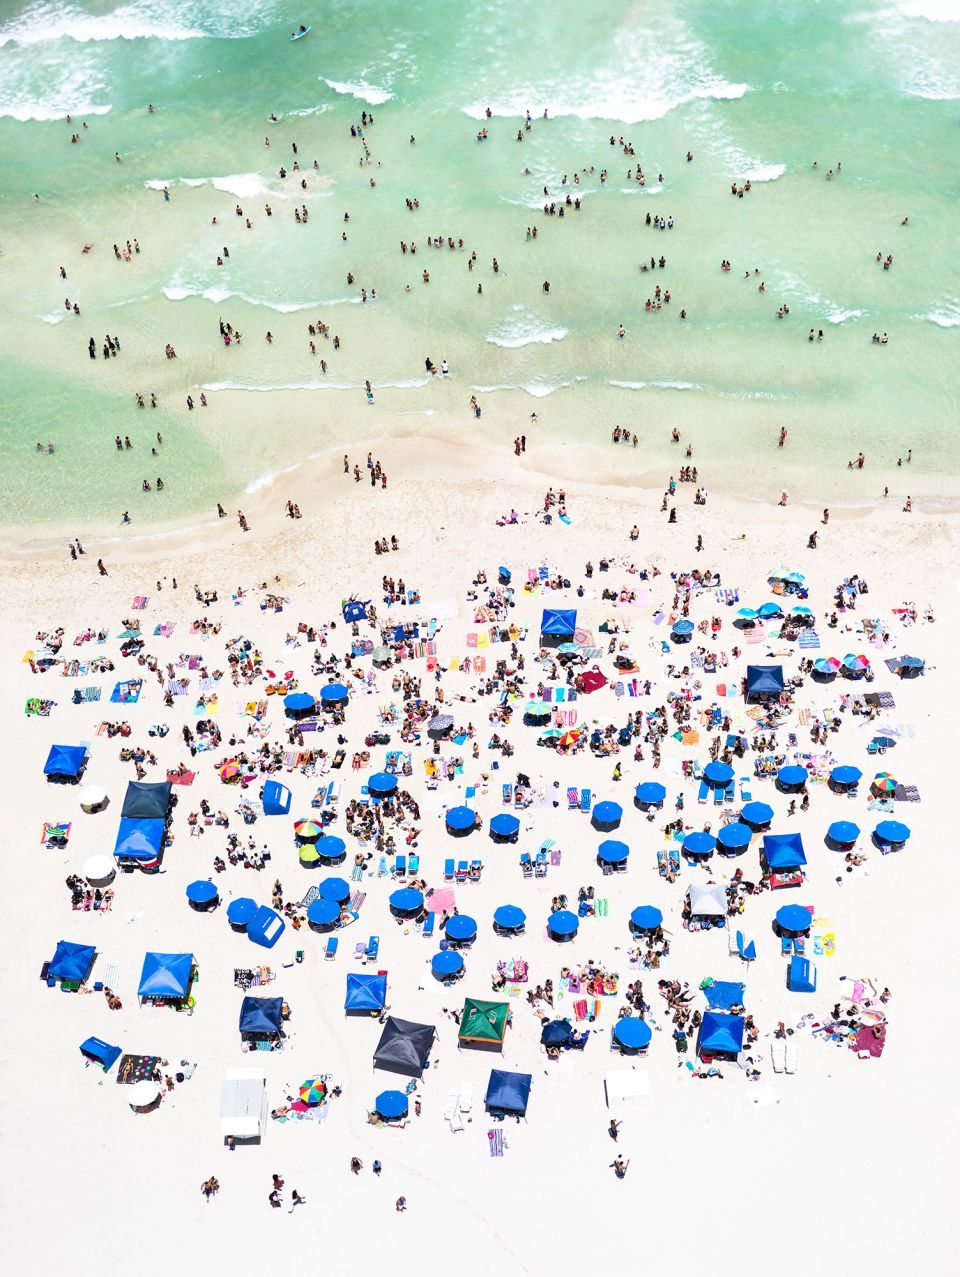 miami-beach-from-above-antoine-rose-03